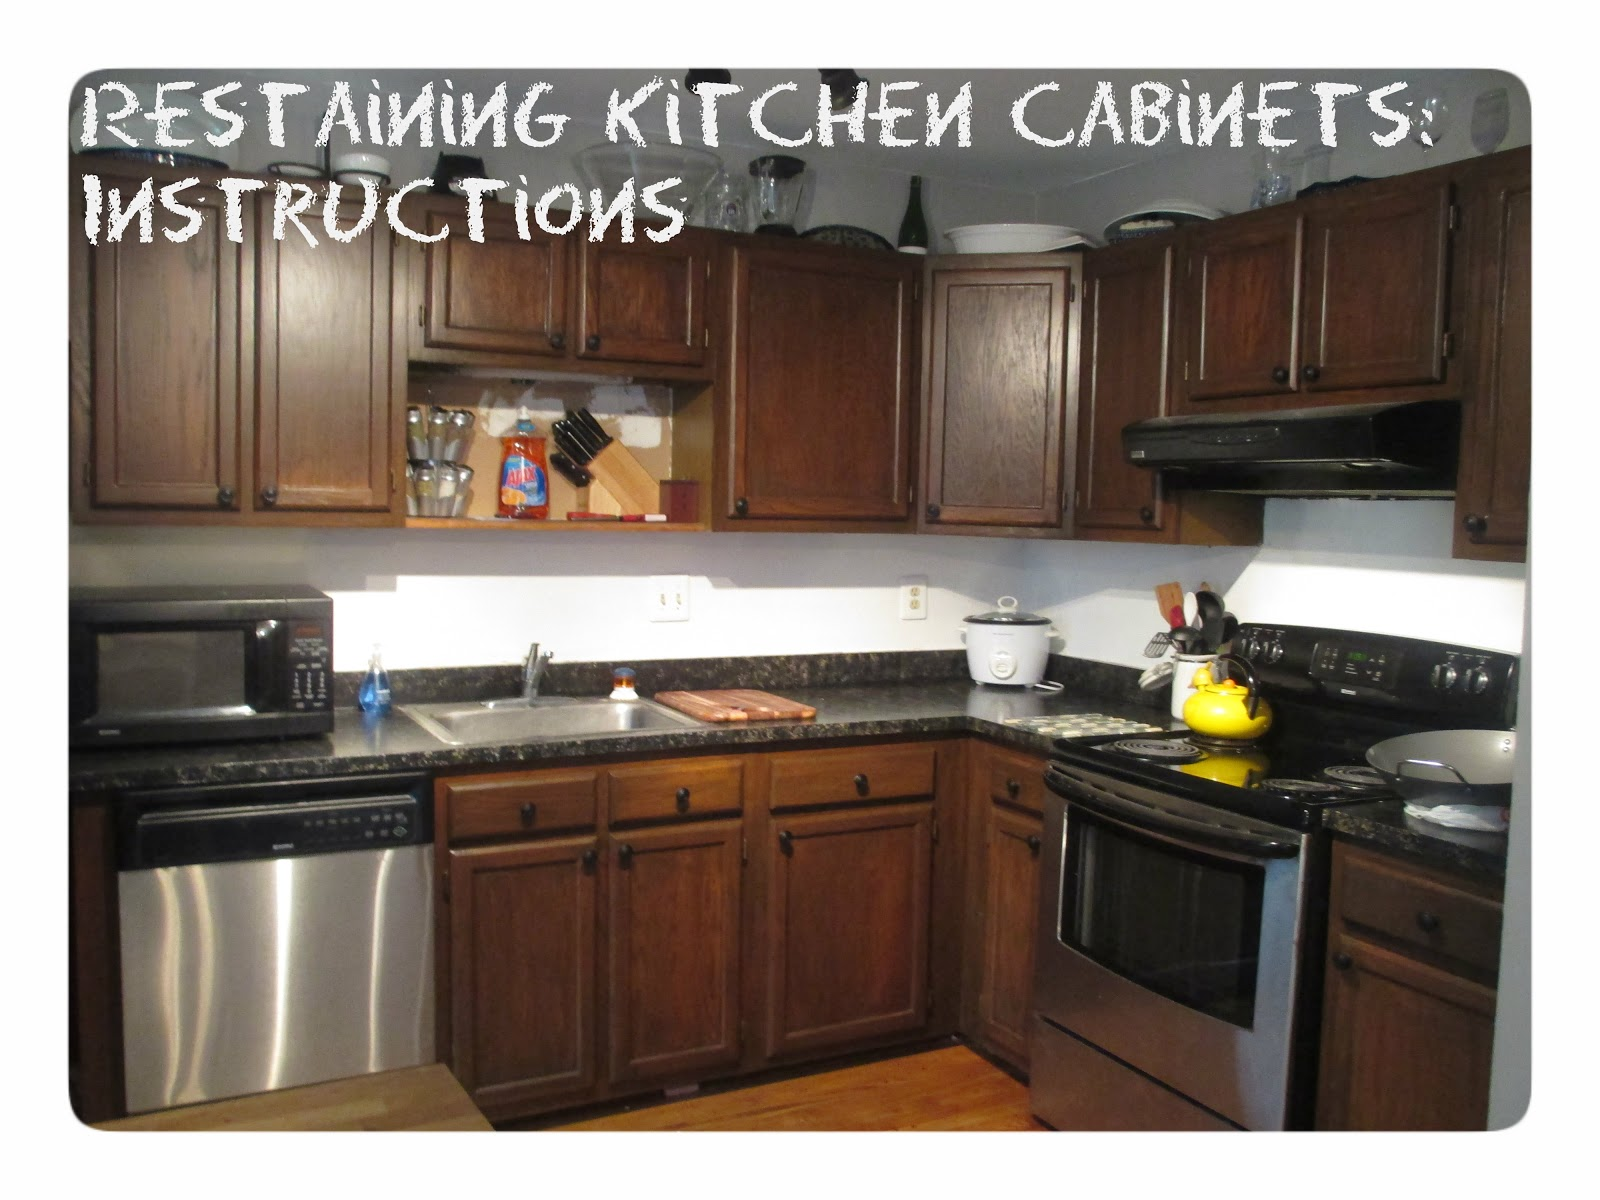 instructions staining kitchen cabinets